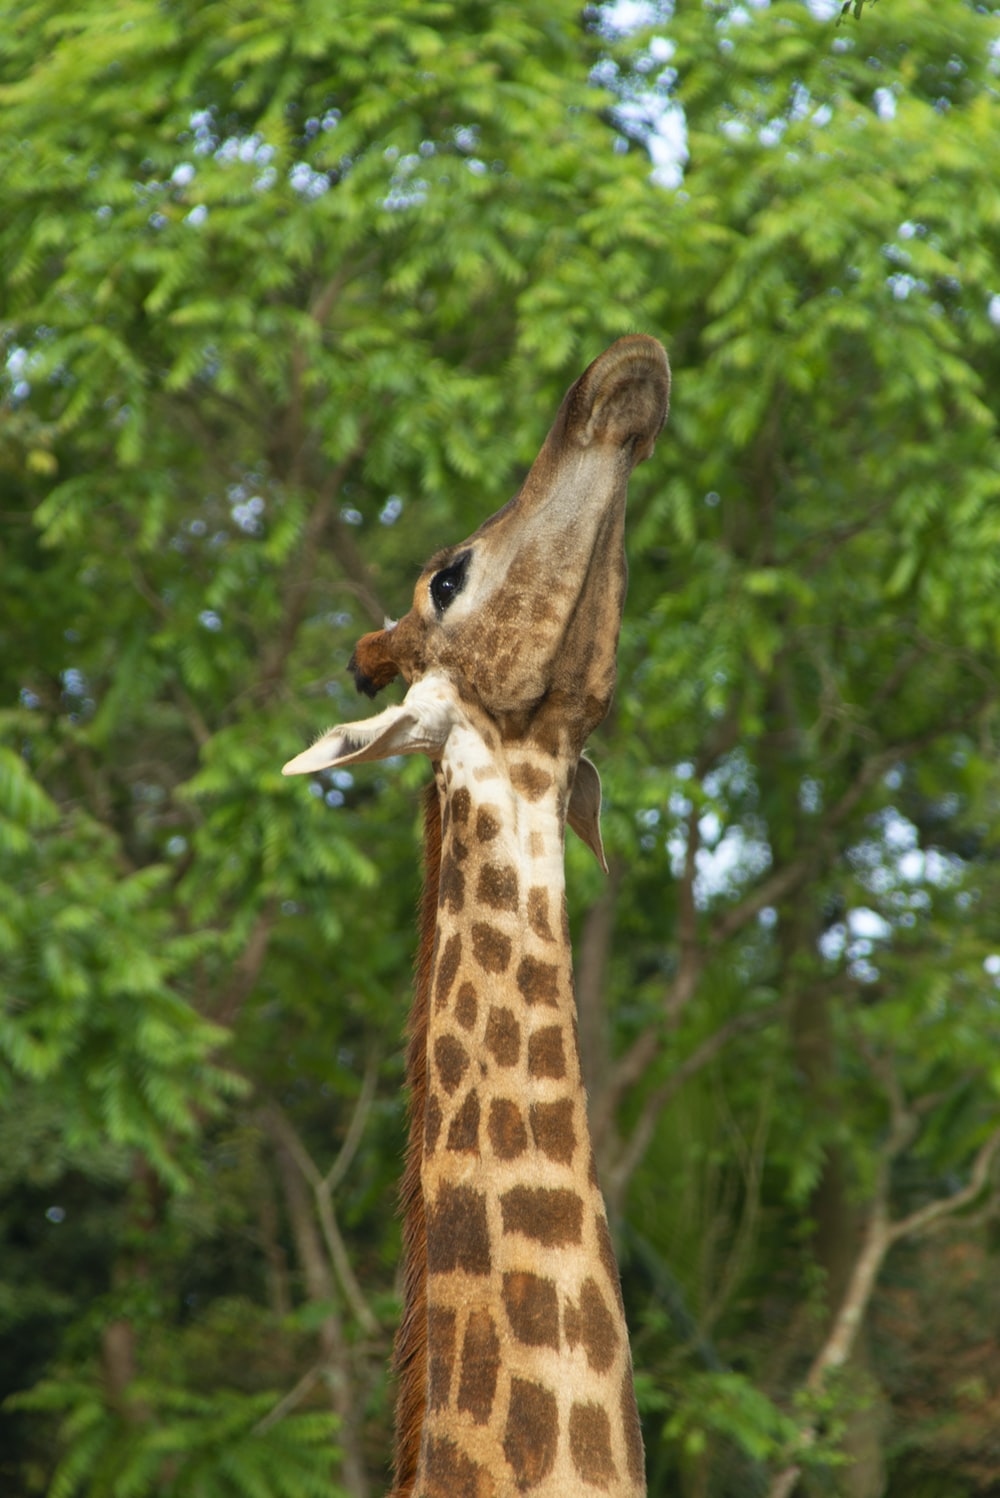 brown and black giraffe in forest during daytime